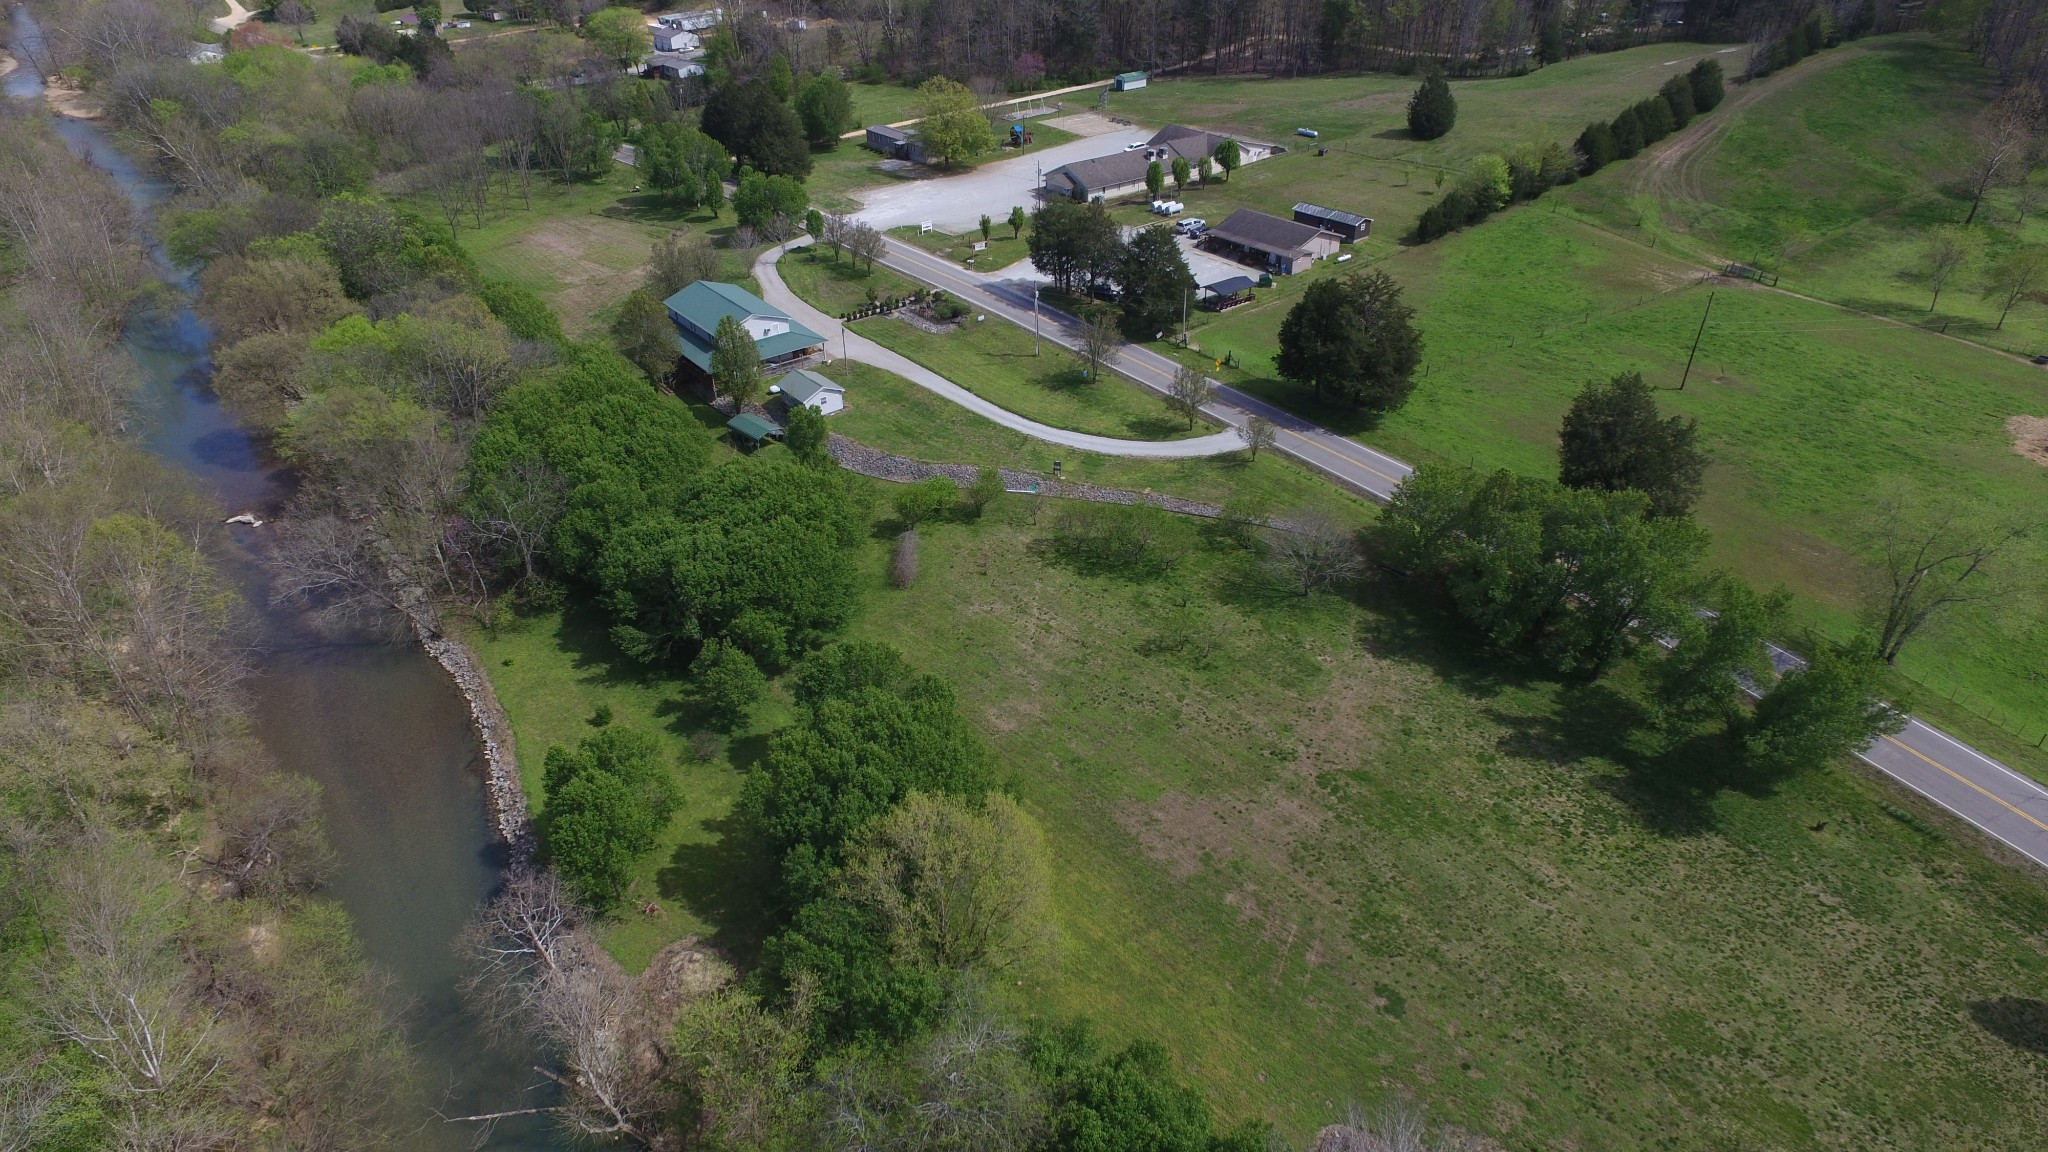 1803 Highway 438, E, Lobelville, TN 37097 - Lobelville, TN real estate listing